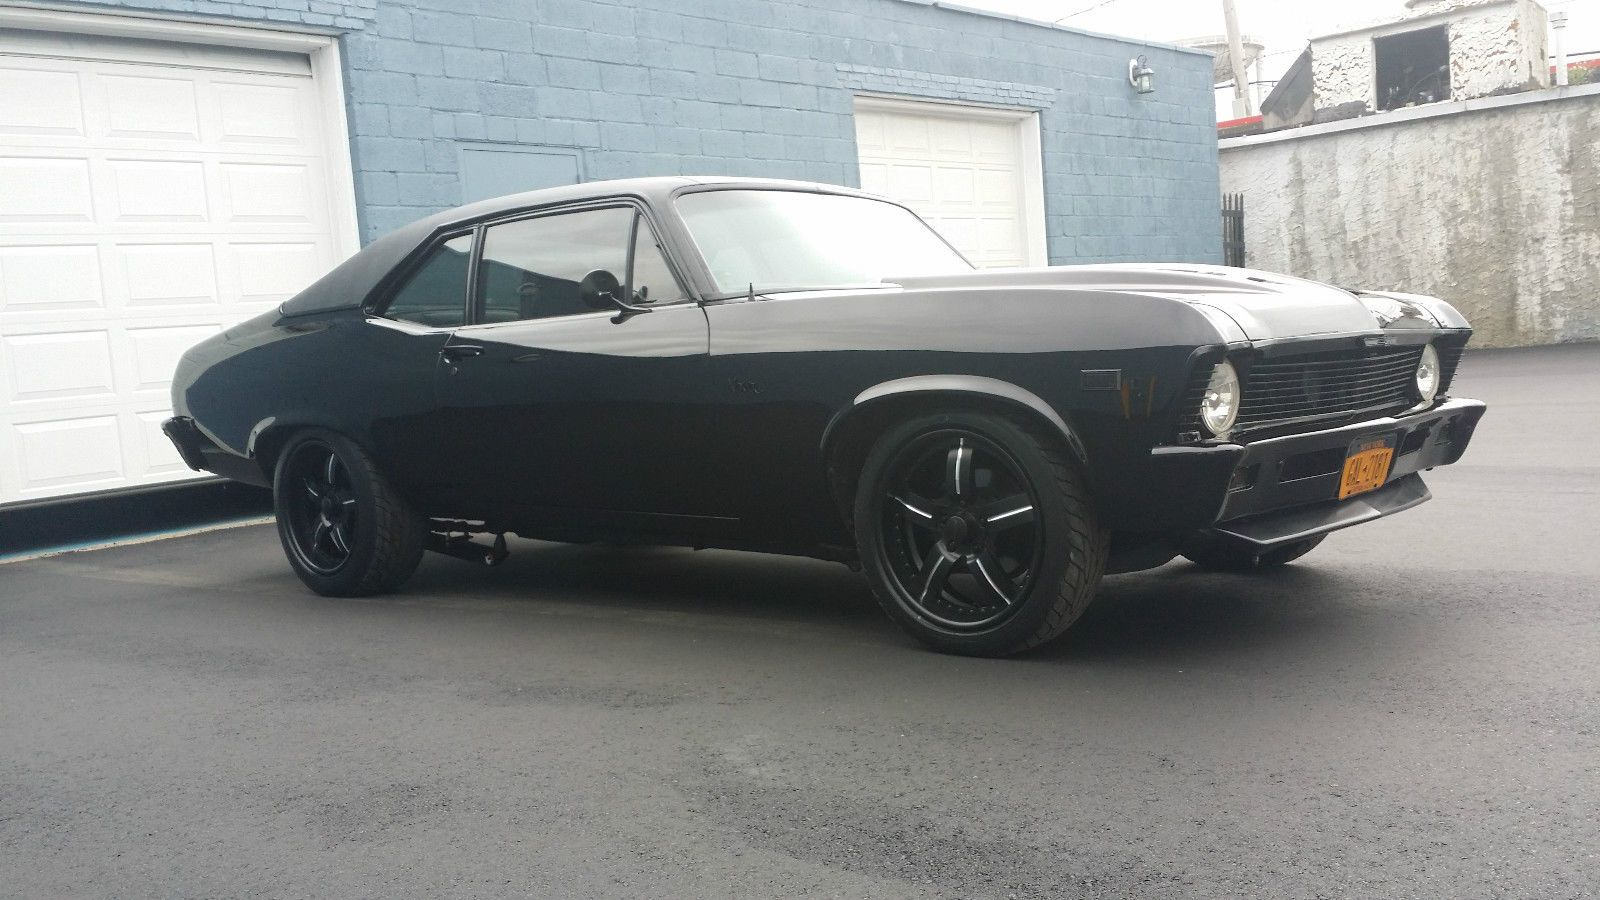 All Chevy black chevy nova : A 1969 Chevy Nova with Murdered out Pro Touring Treatment | Chevy ...